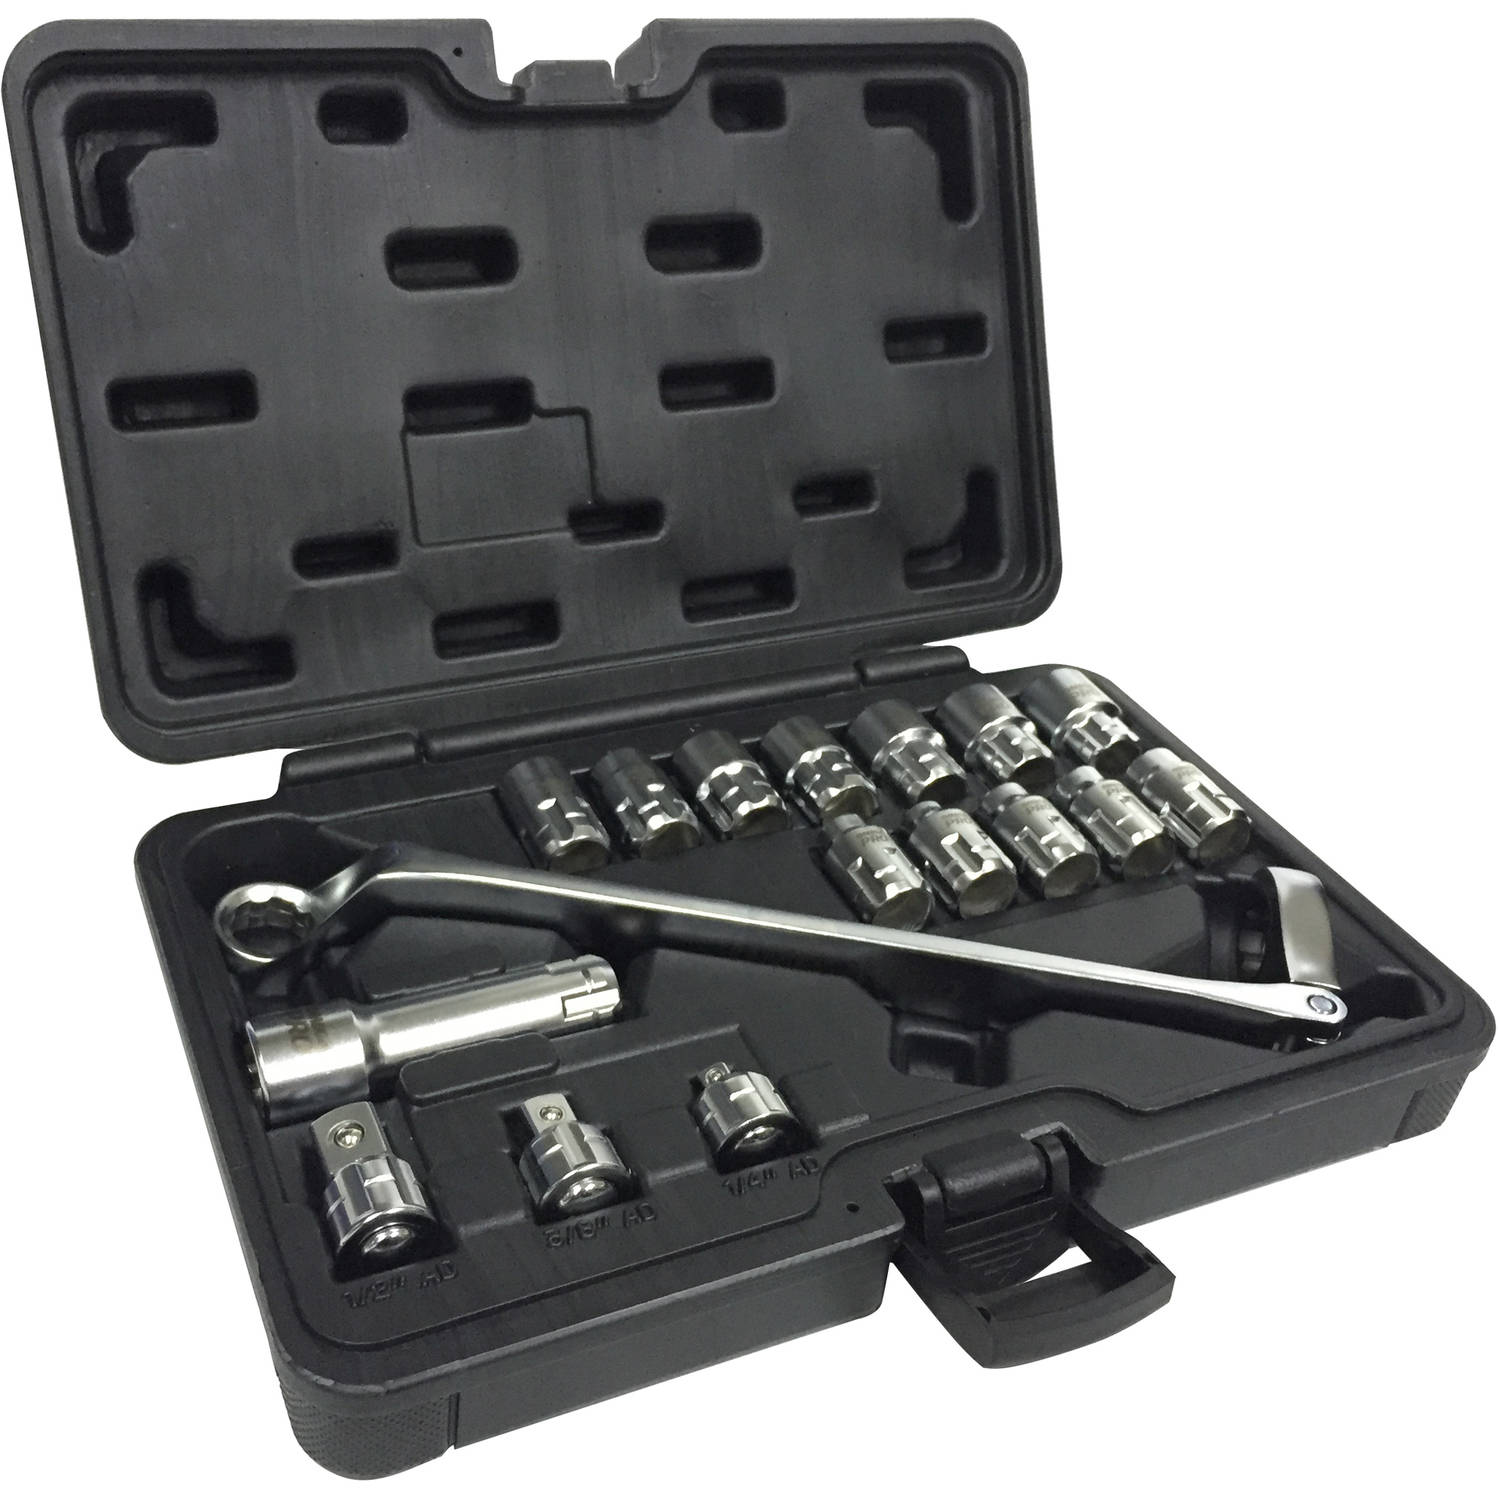 "Omega Pro 83030 17-Piece 1/2"" Drive Flexible Ratchet with Go-Through Sockets, 1/4"" and 3/8"" Adapters, MM"